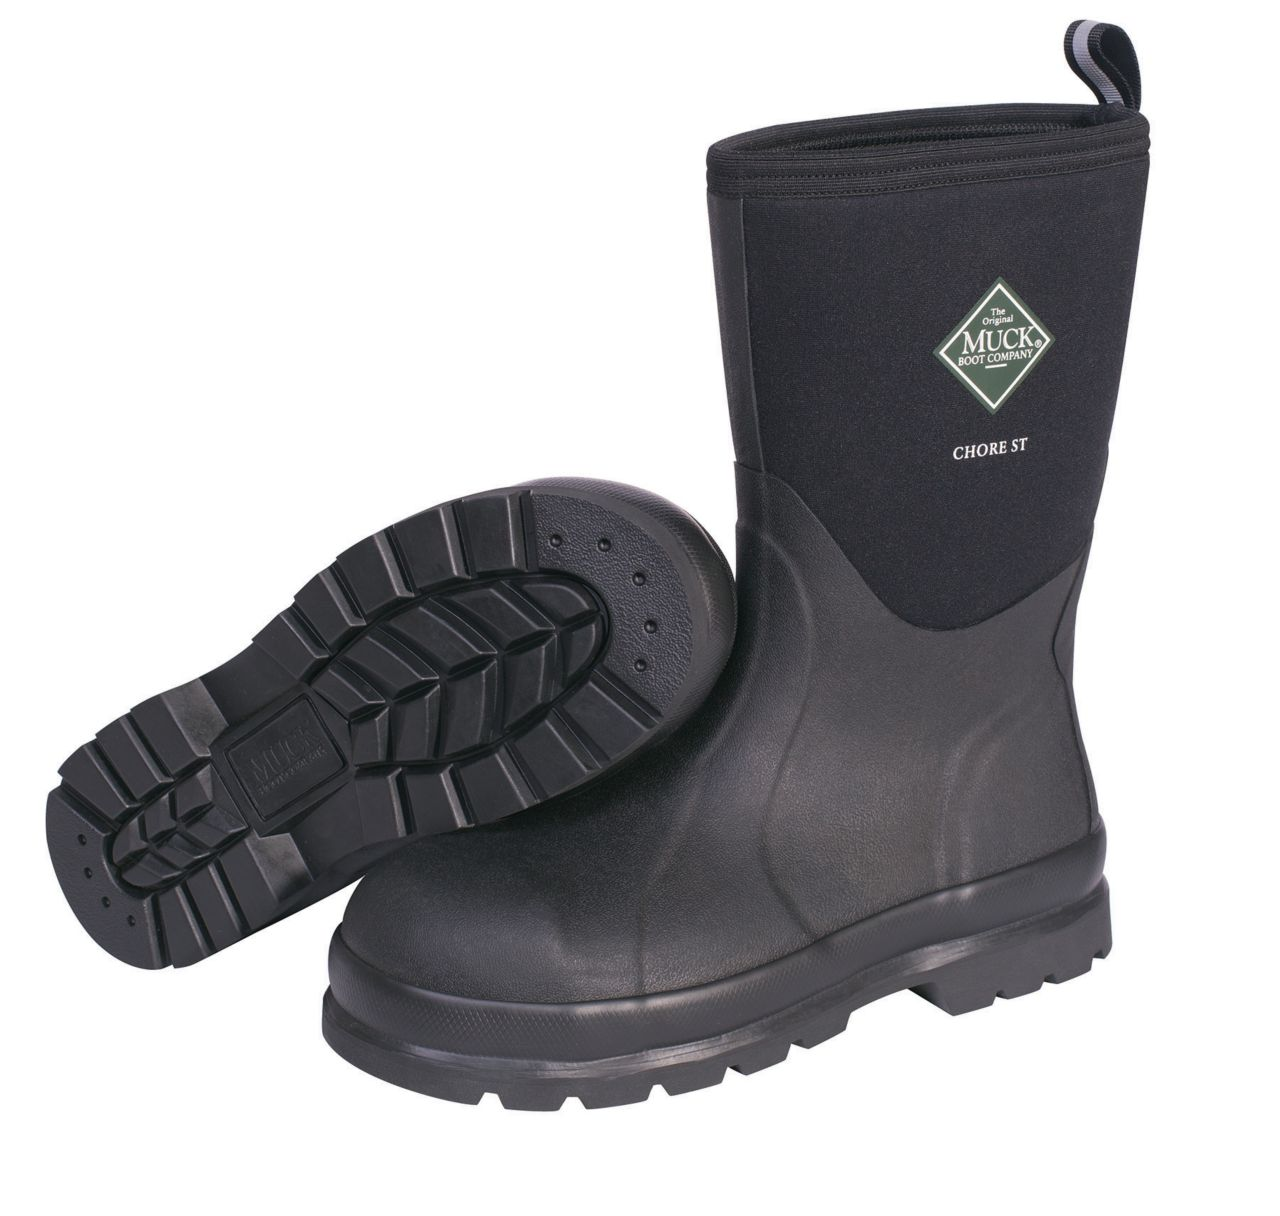 Muck Chore Mid-Safety Toe